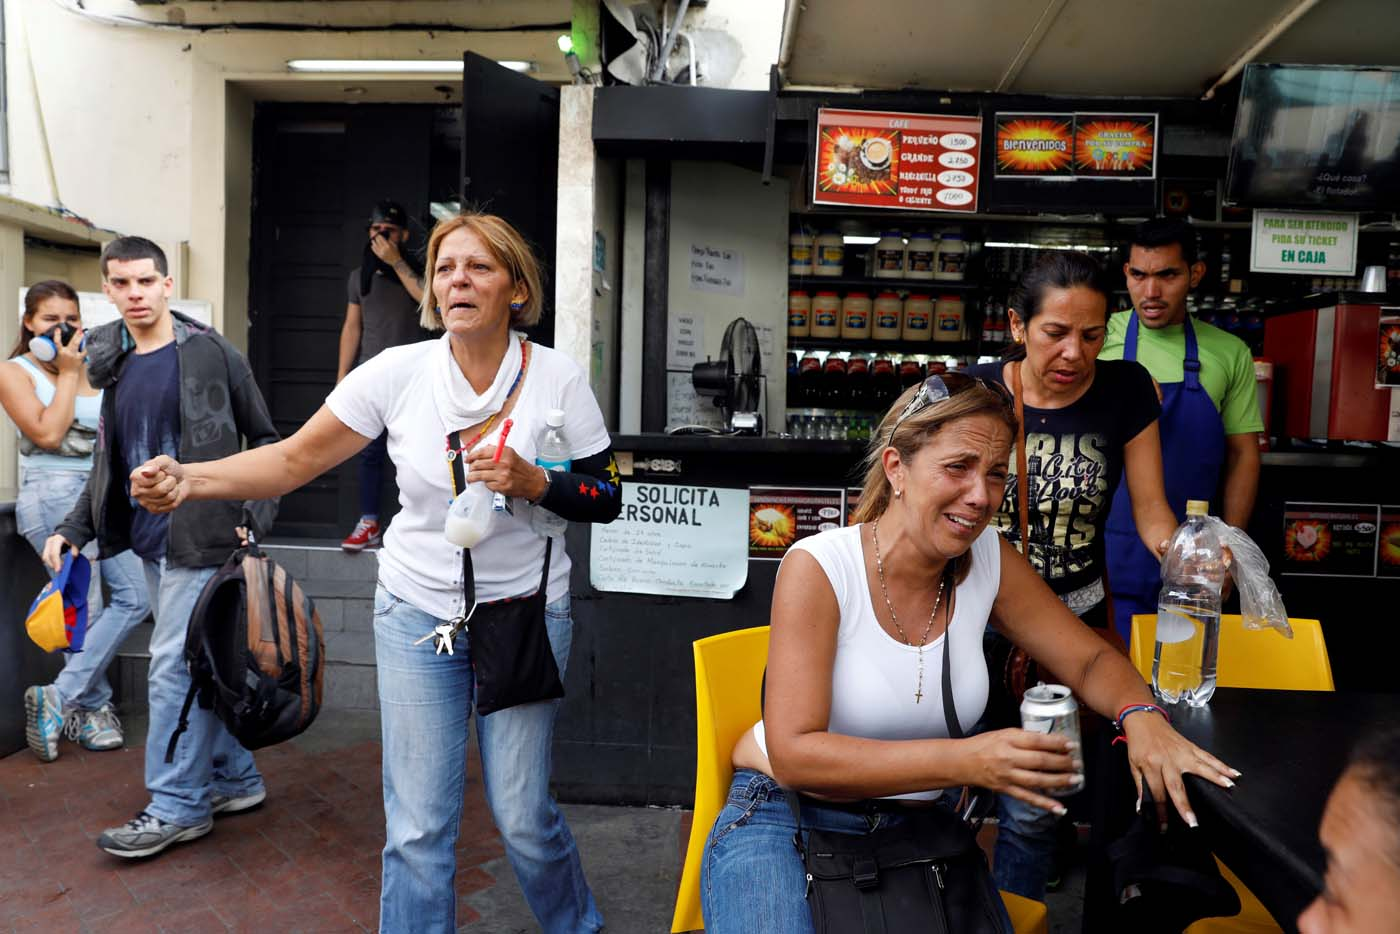 People react at a restaurant after smoke from tear gas fired by security forces got inside of it during clashes at a rally against Venezuelan President Nicolas Maduro's government in Caracas, Venezuela, July 6, 2017. REUTERS/Andres Martinez Casares